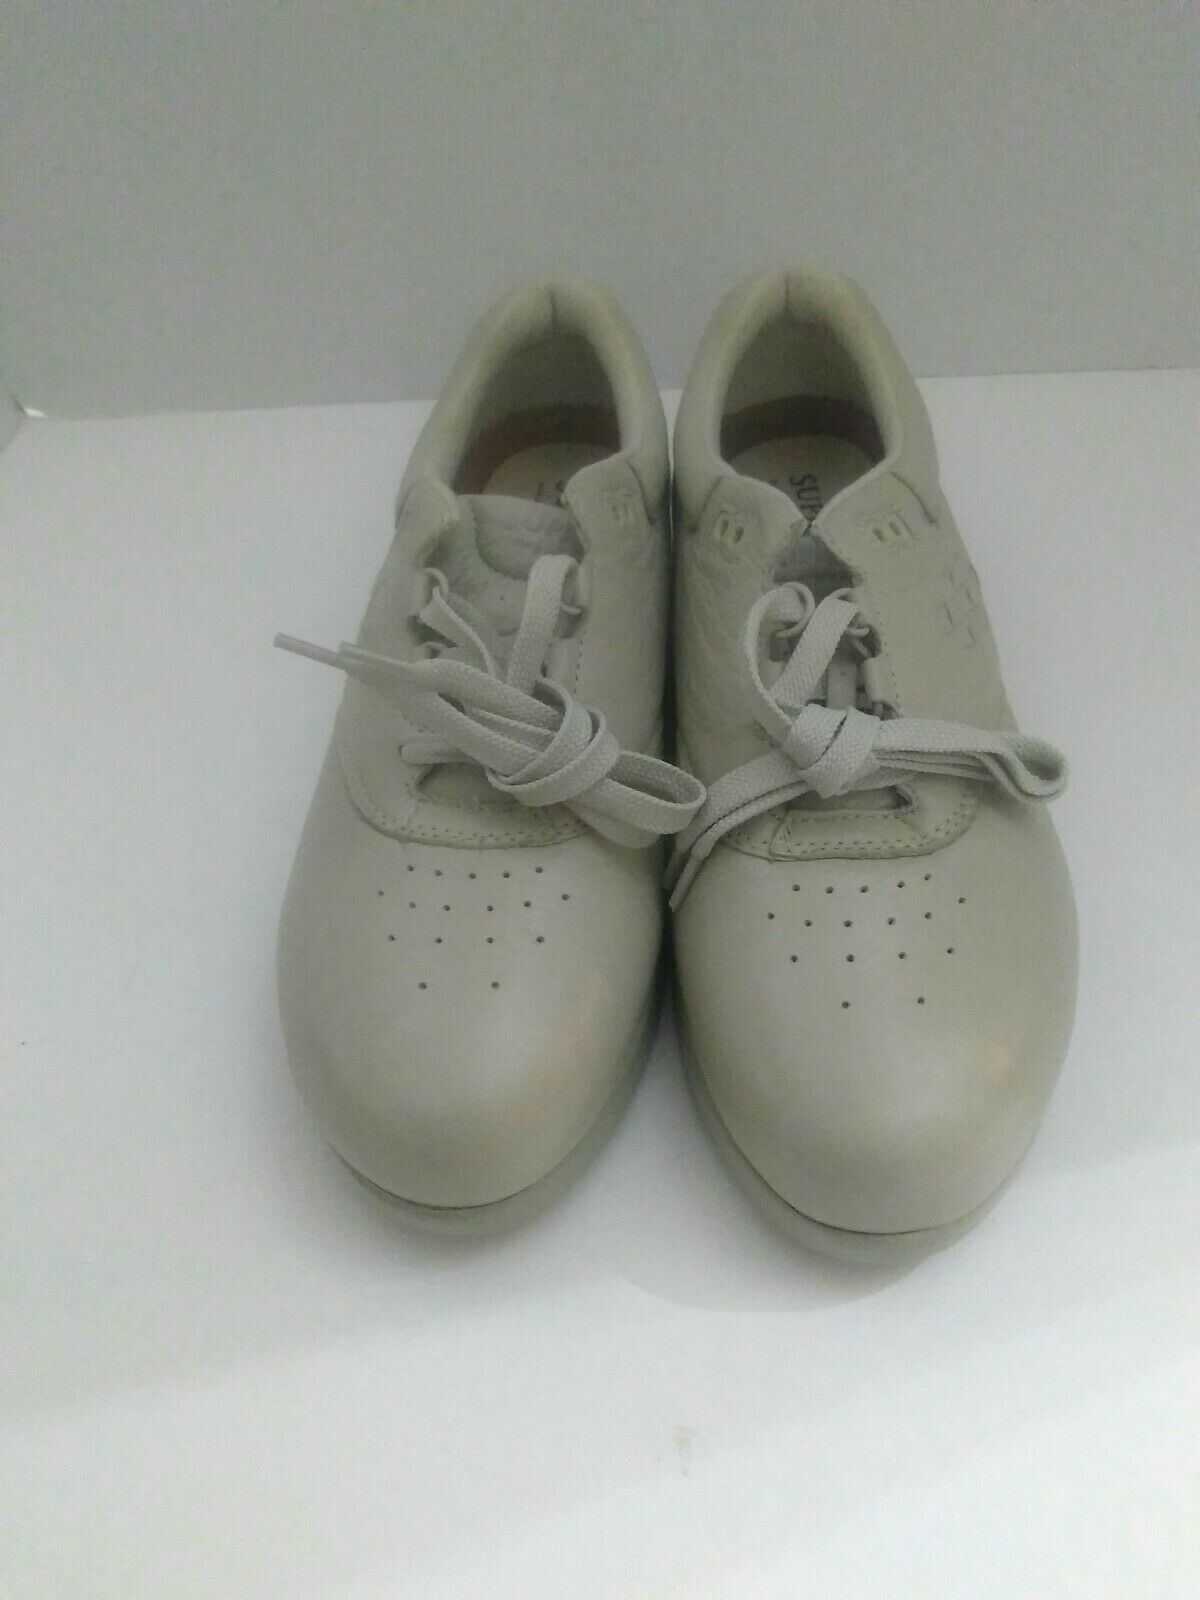 Supremes by Soft Spots Womens Size 10 N Comfort Shoes off white.